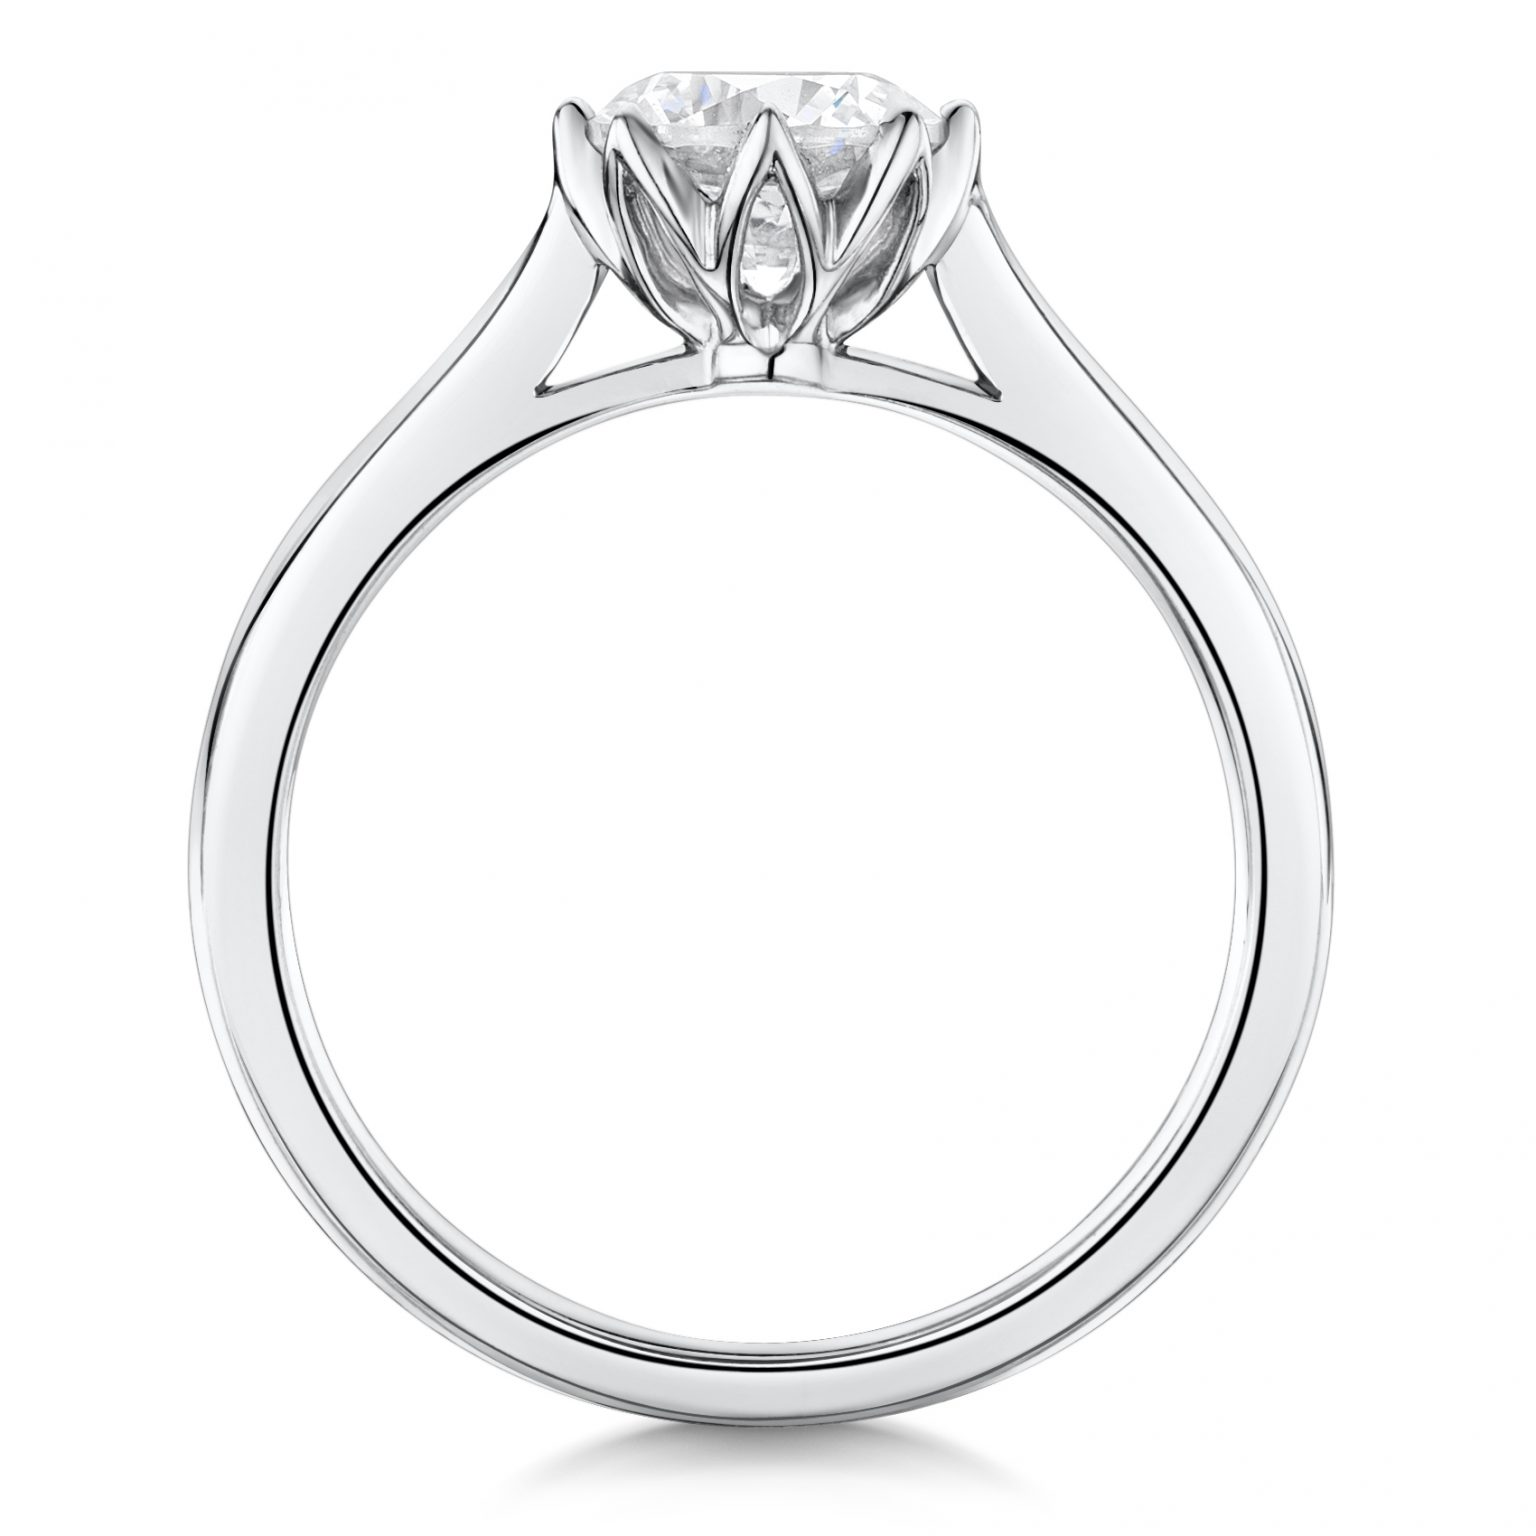 ring the crop diamond diamonds shop scale subsampling upscale rings elixir false solitaire engagement marquise product